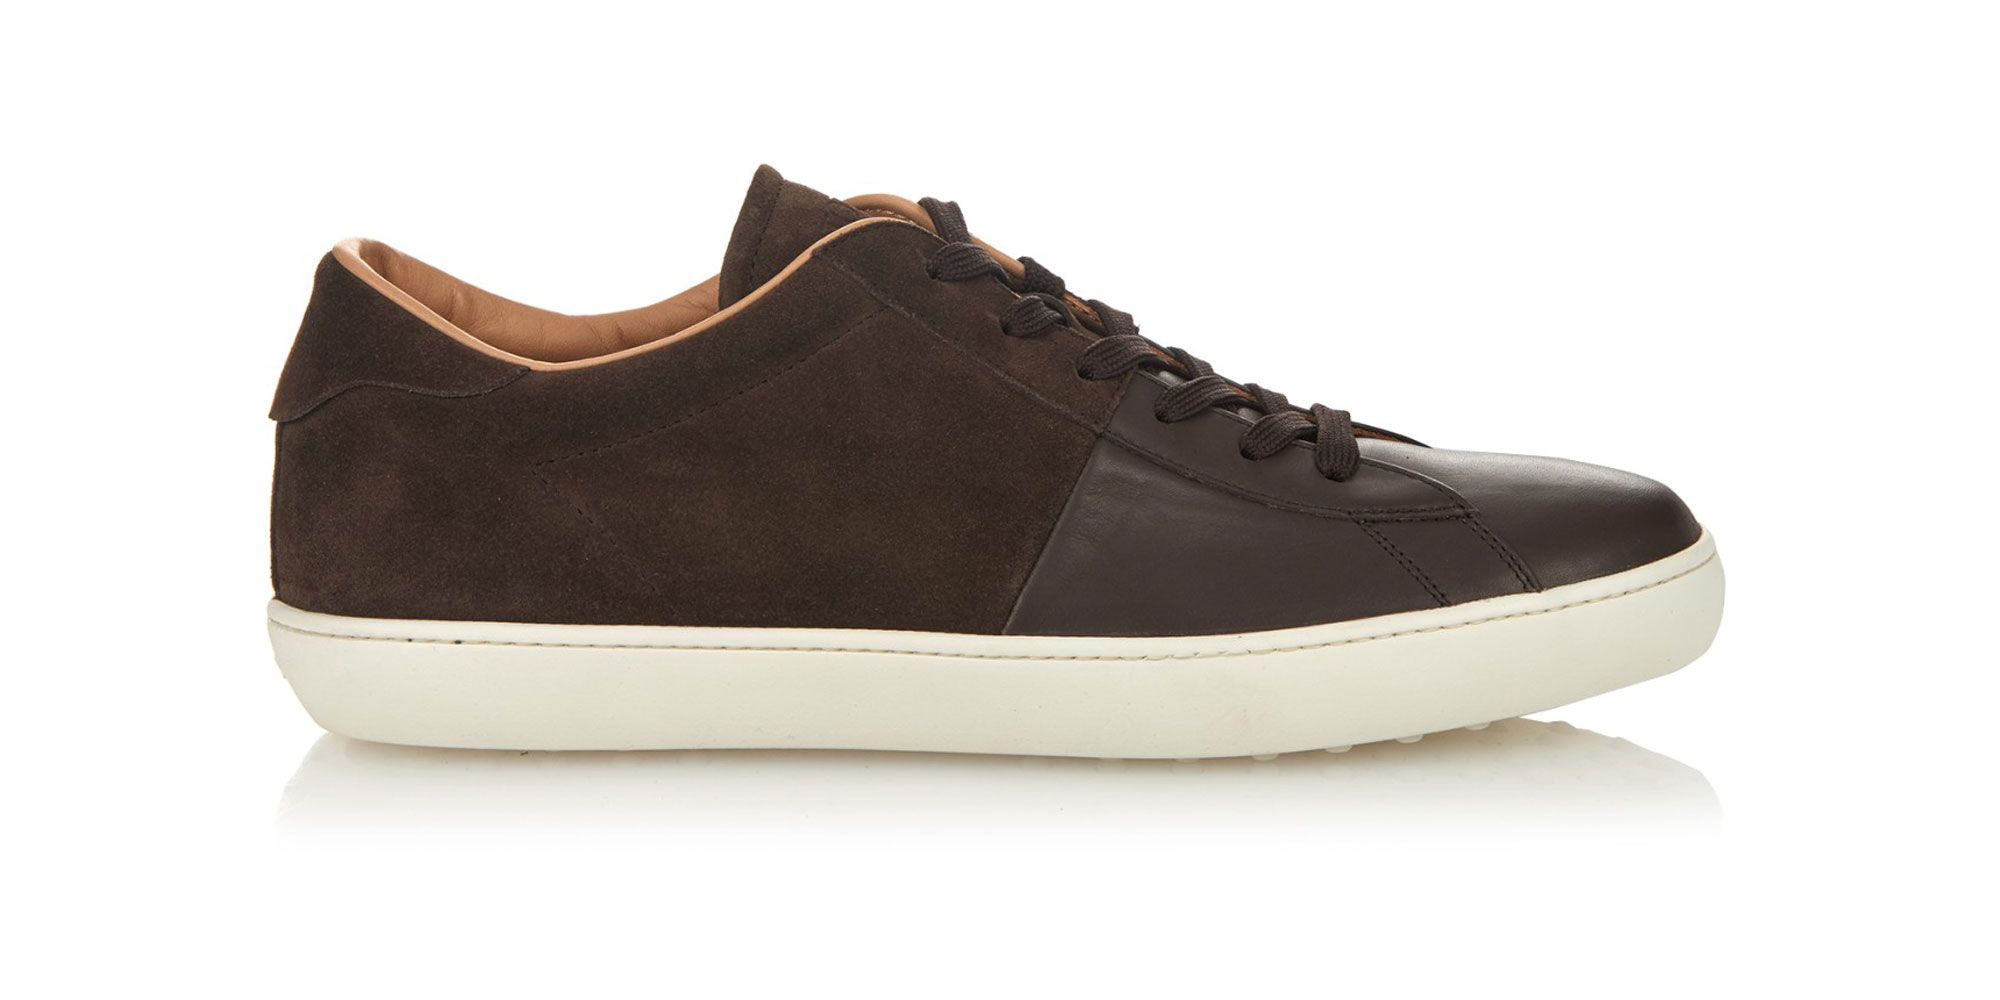 Footwear Suede Sneakers The And Leather FixTod's 8kNn0XOwP